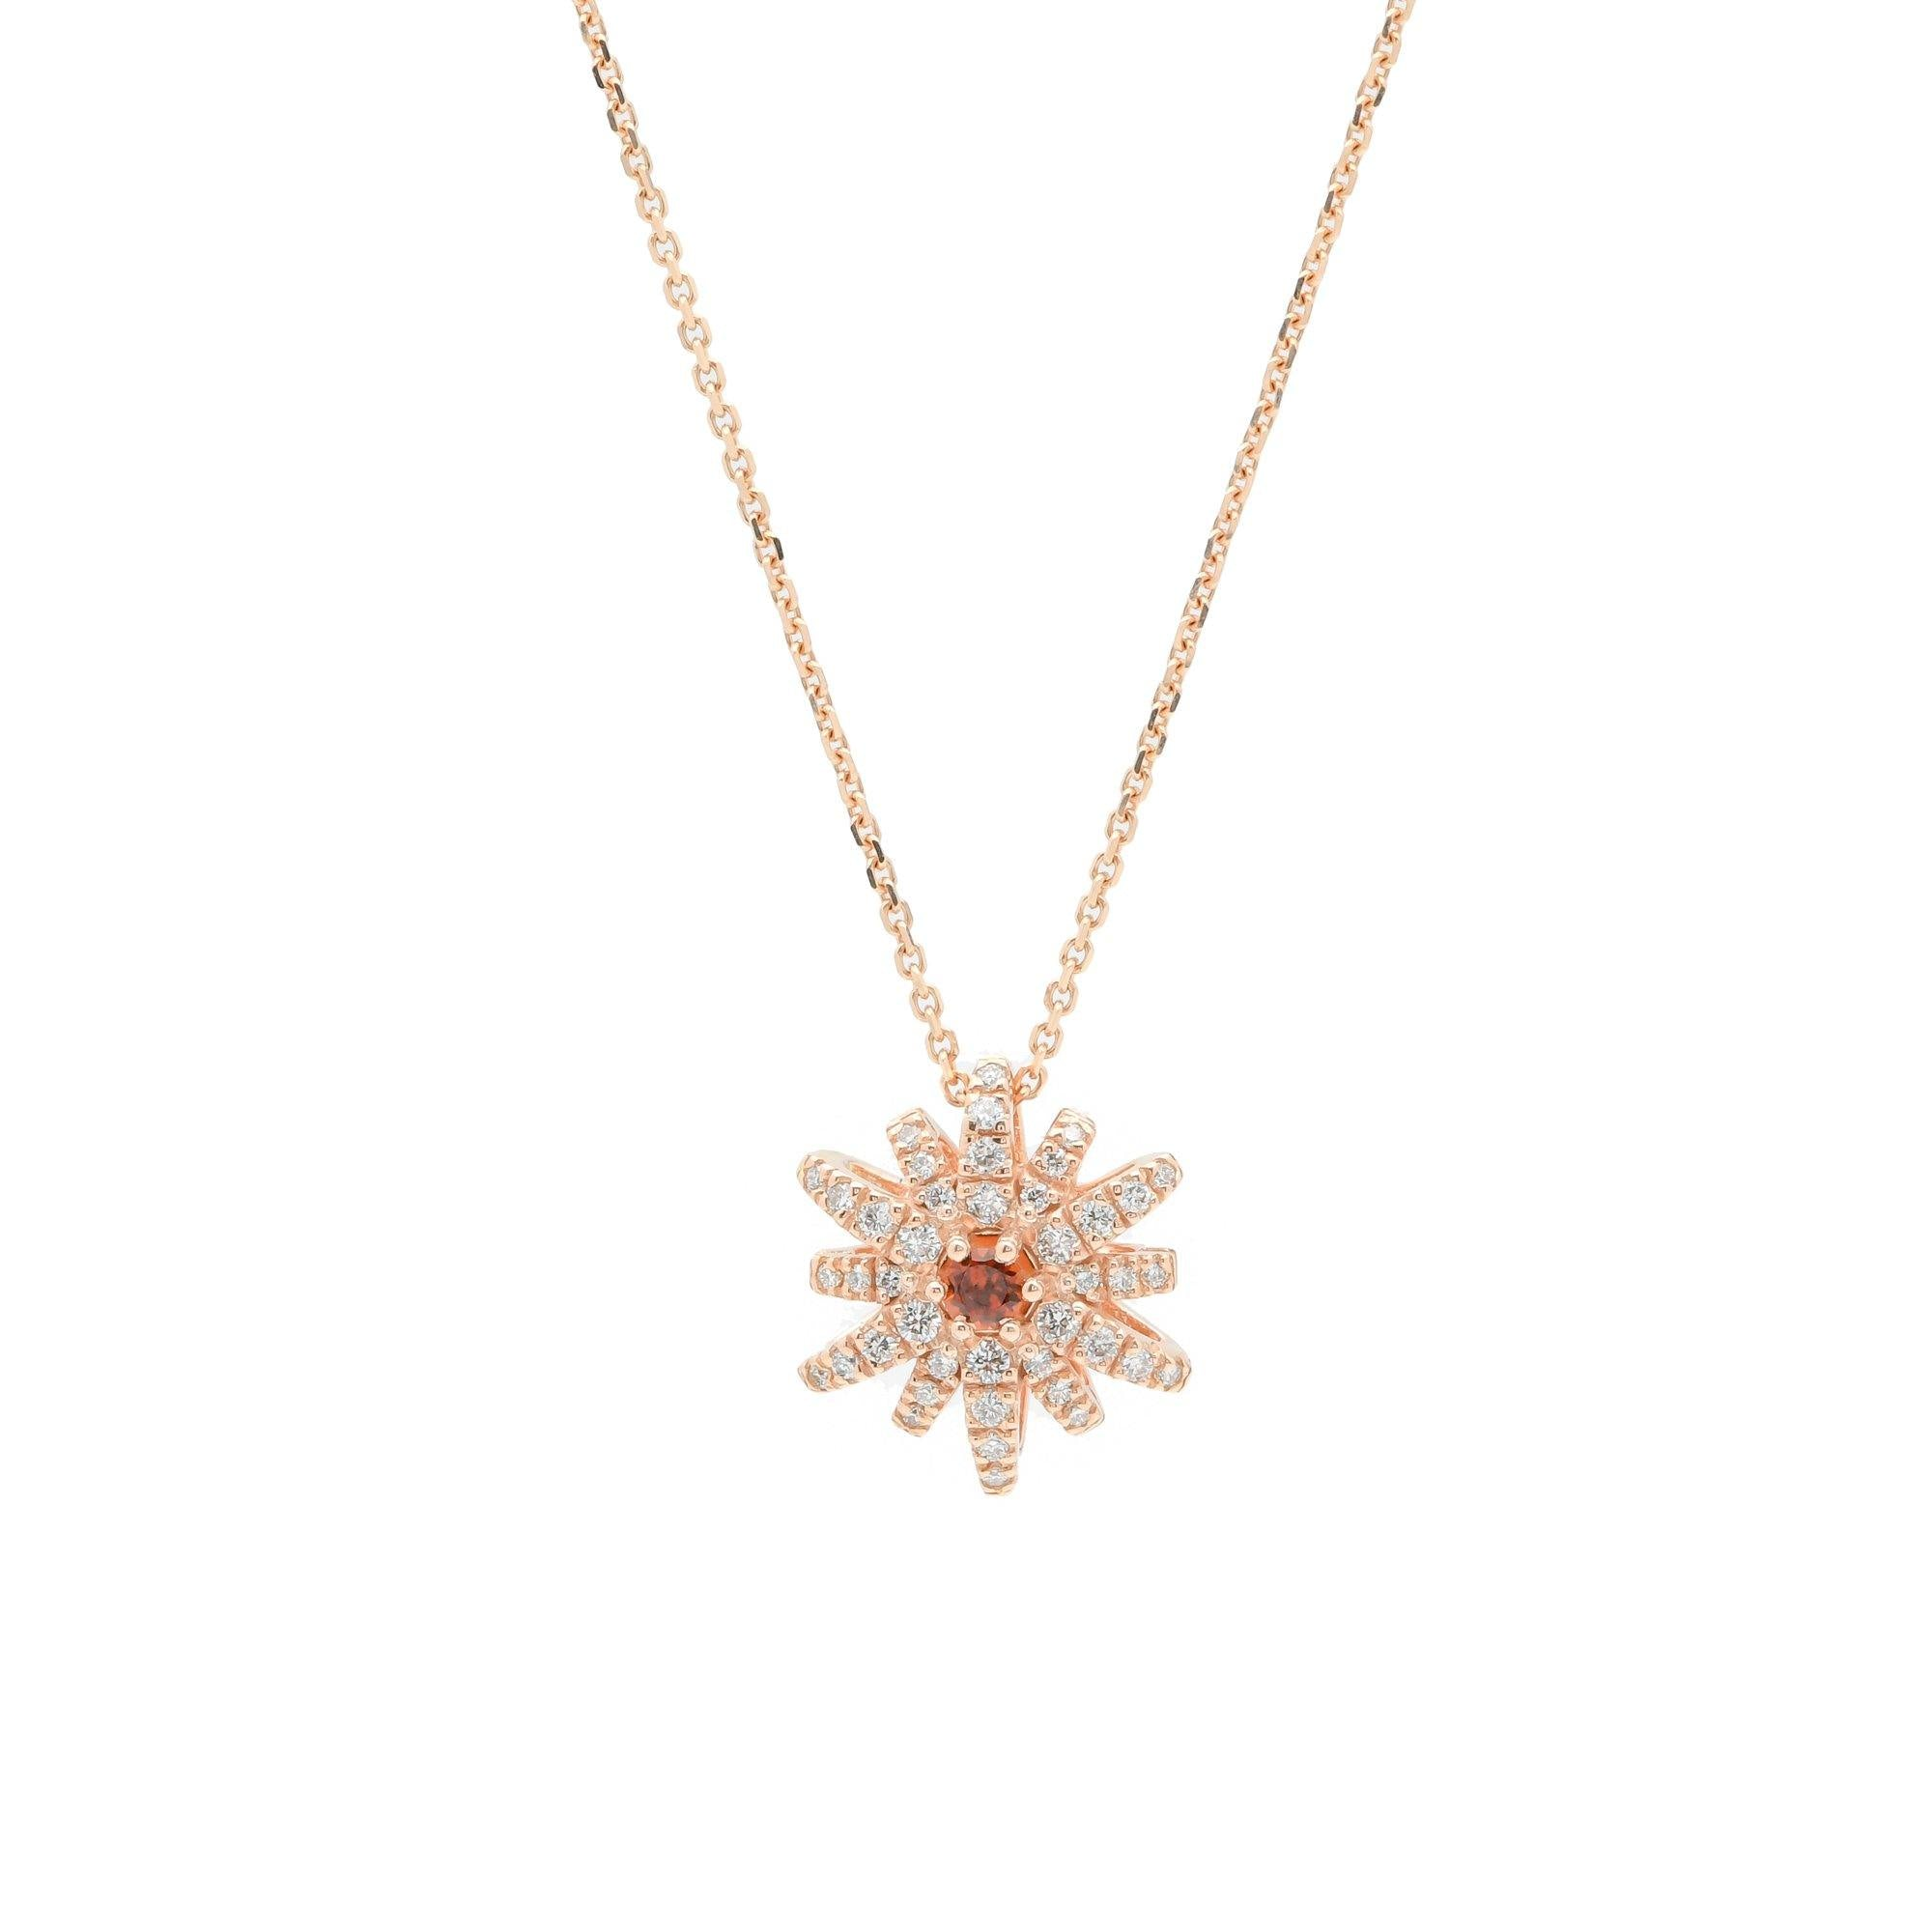 PINK DIVA  | Collier en or 14 carats, diamants et grenat naturel